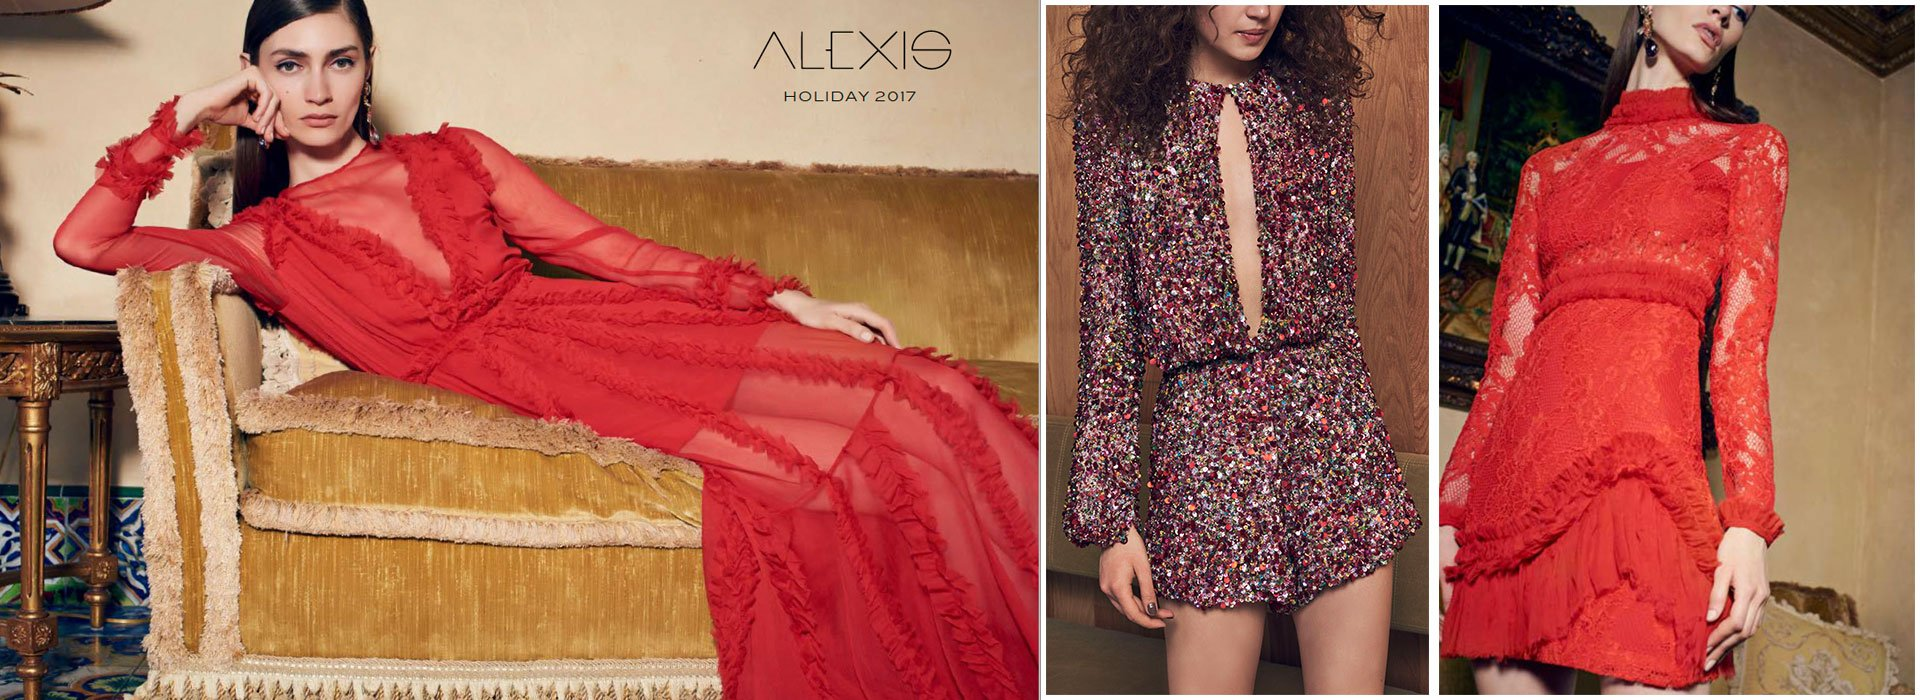 Alexis Couture, Alexis Clothing, Alexis Dresses on Sale, Alexis Rompers, Alexis Jumpsuits, Alexis New Arrivals